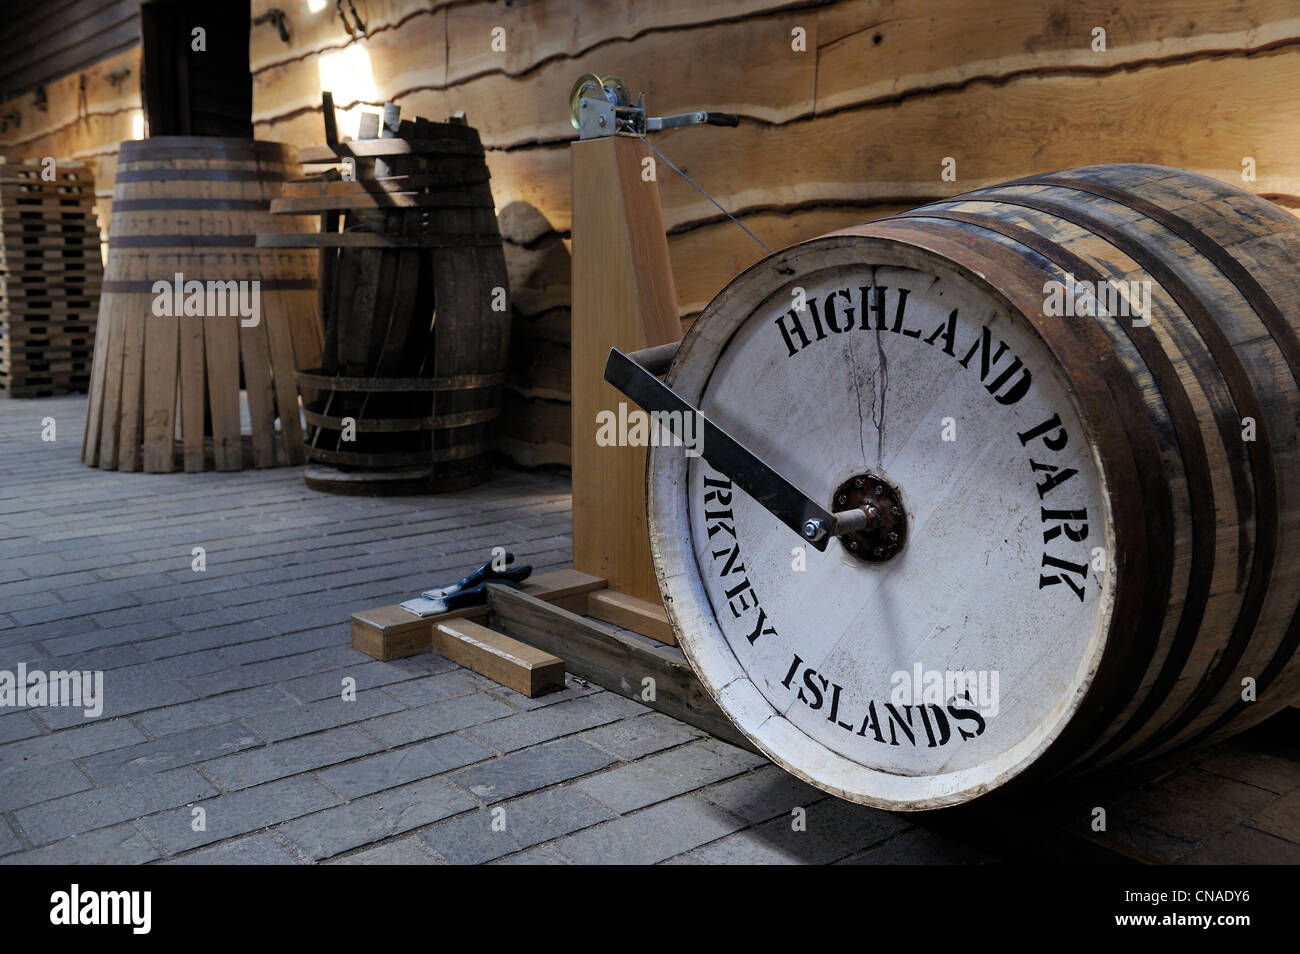 United Kingdom, Scotland, Orkney Islands, Kirkwall, Highland Park whisky distillery, barrels preparation - Stock Image